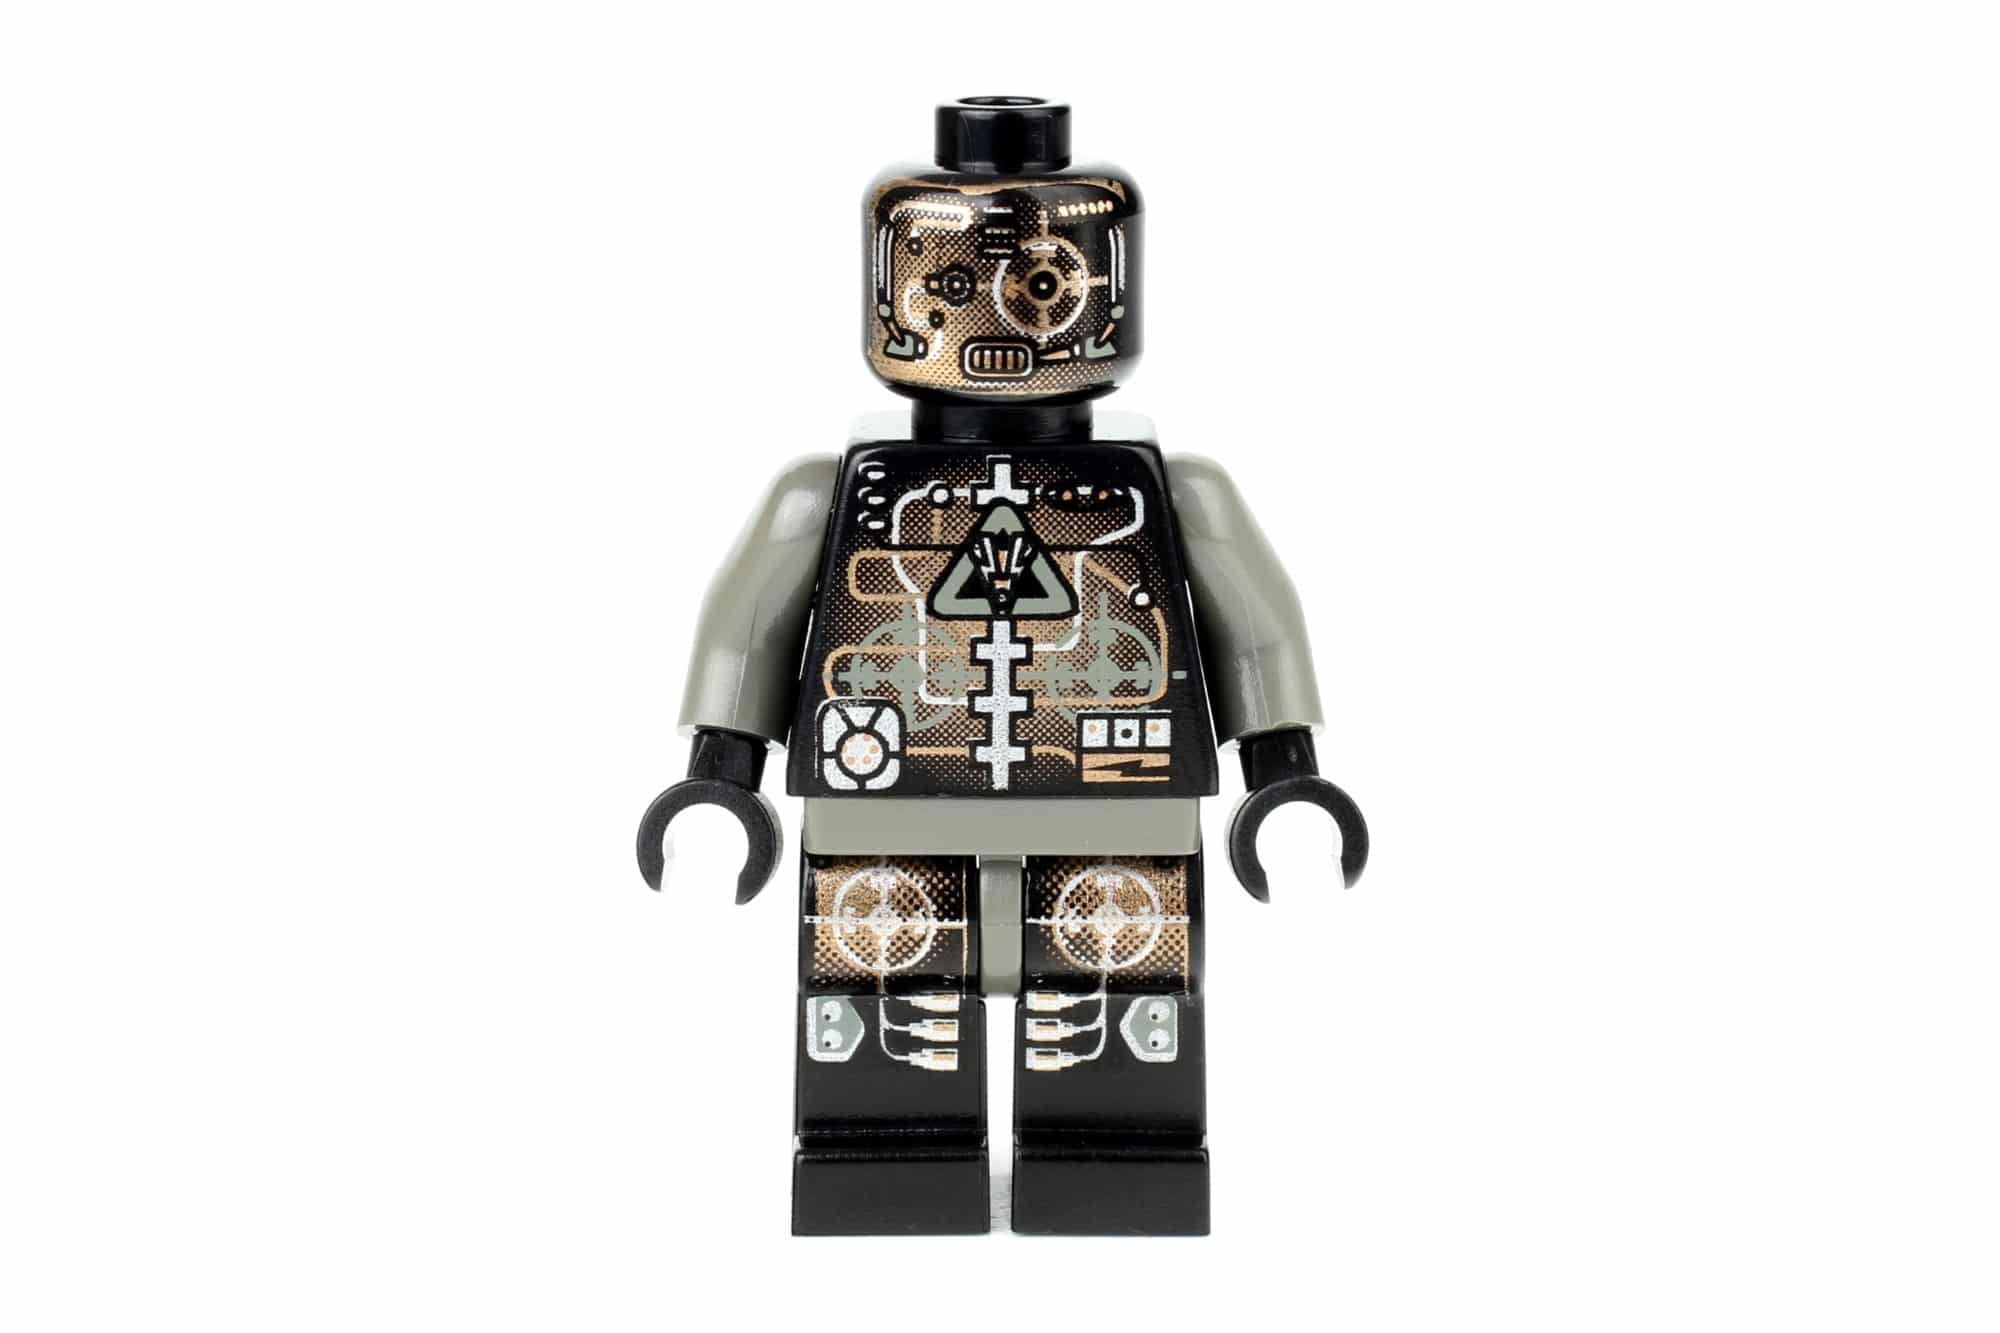 LEGO Insectoids Minifigure Robot